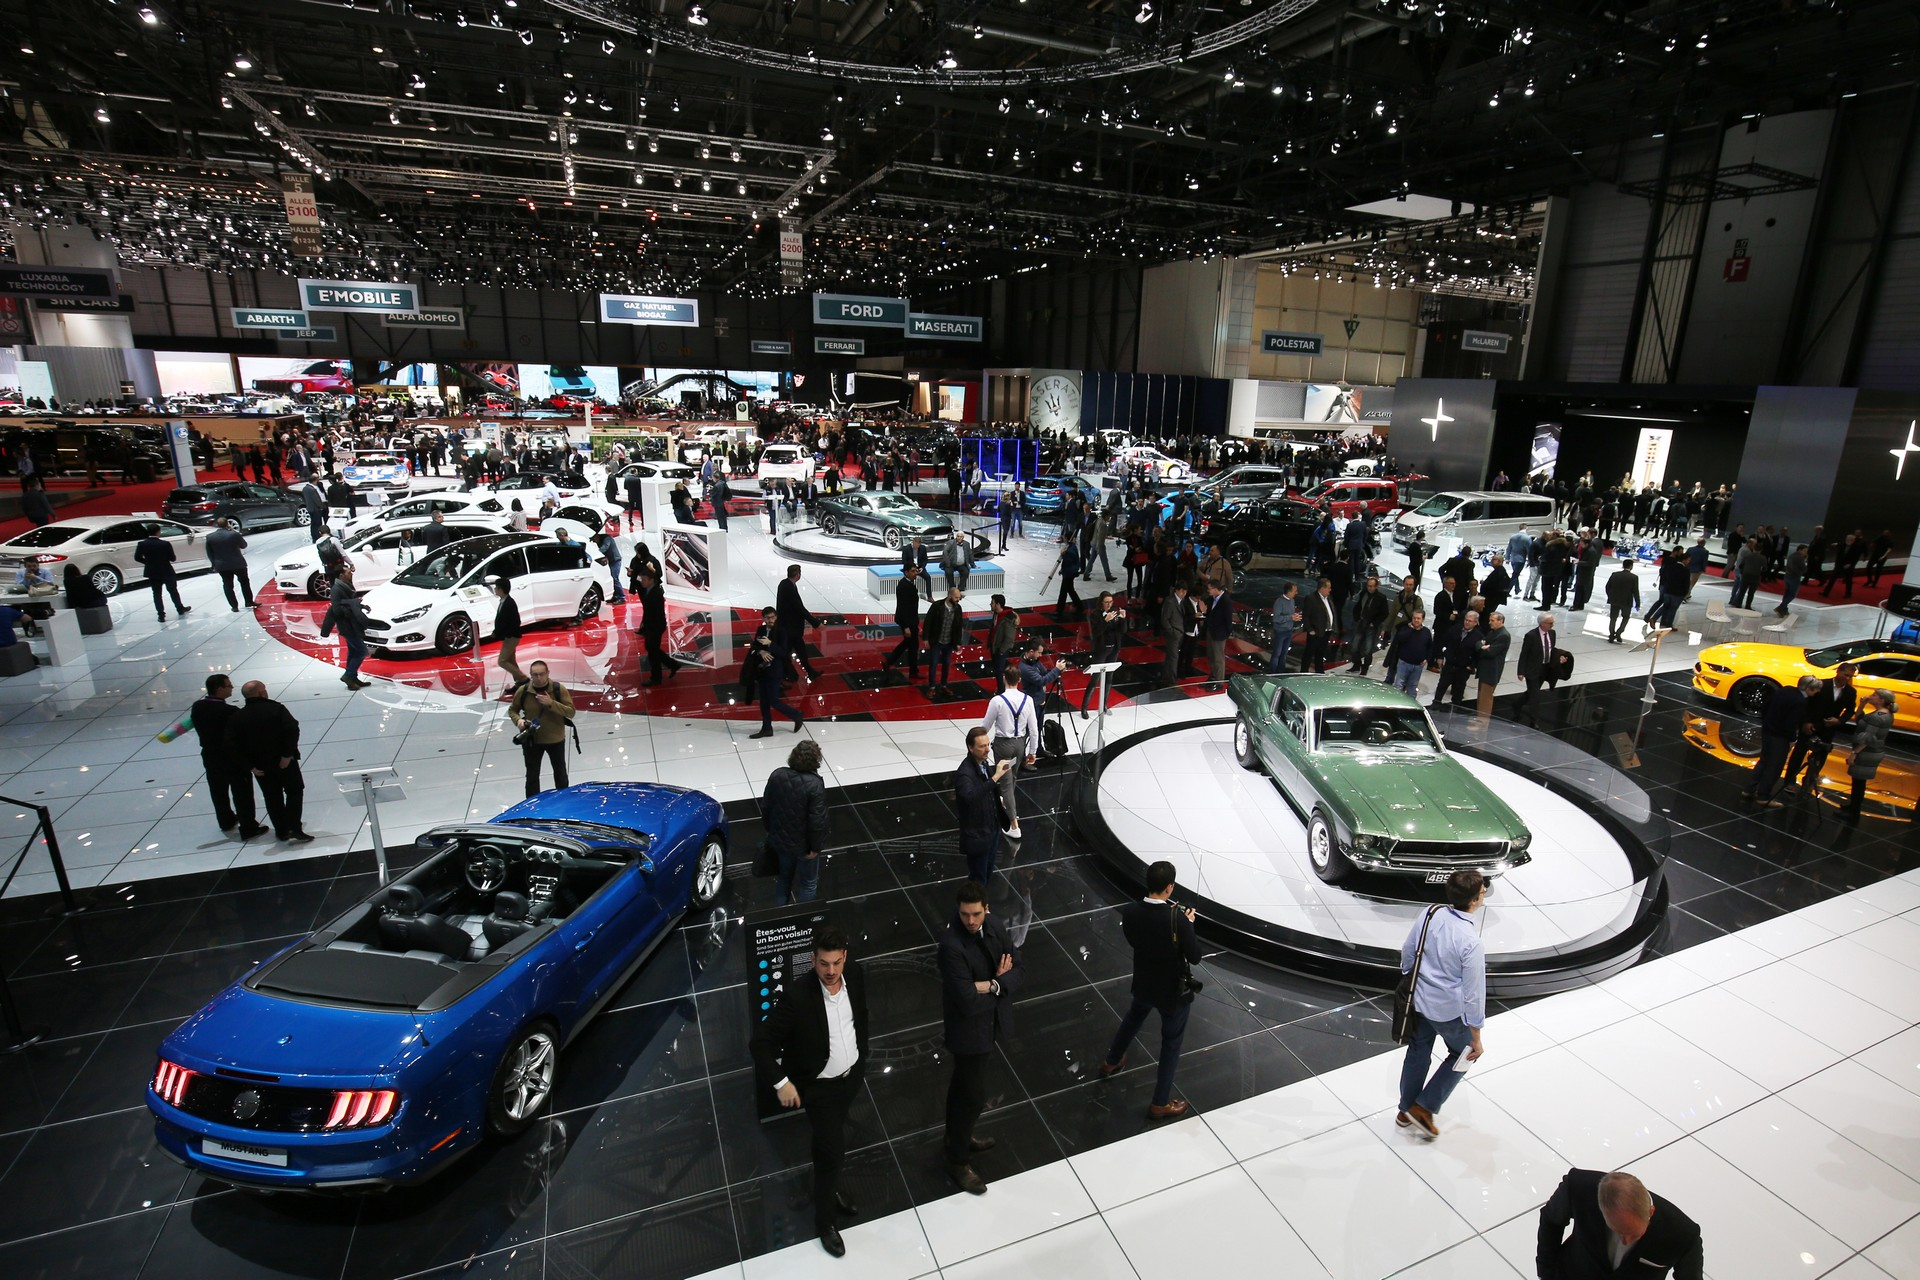 Geneva auto show canceled due to coronavirus restrictions